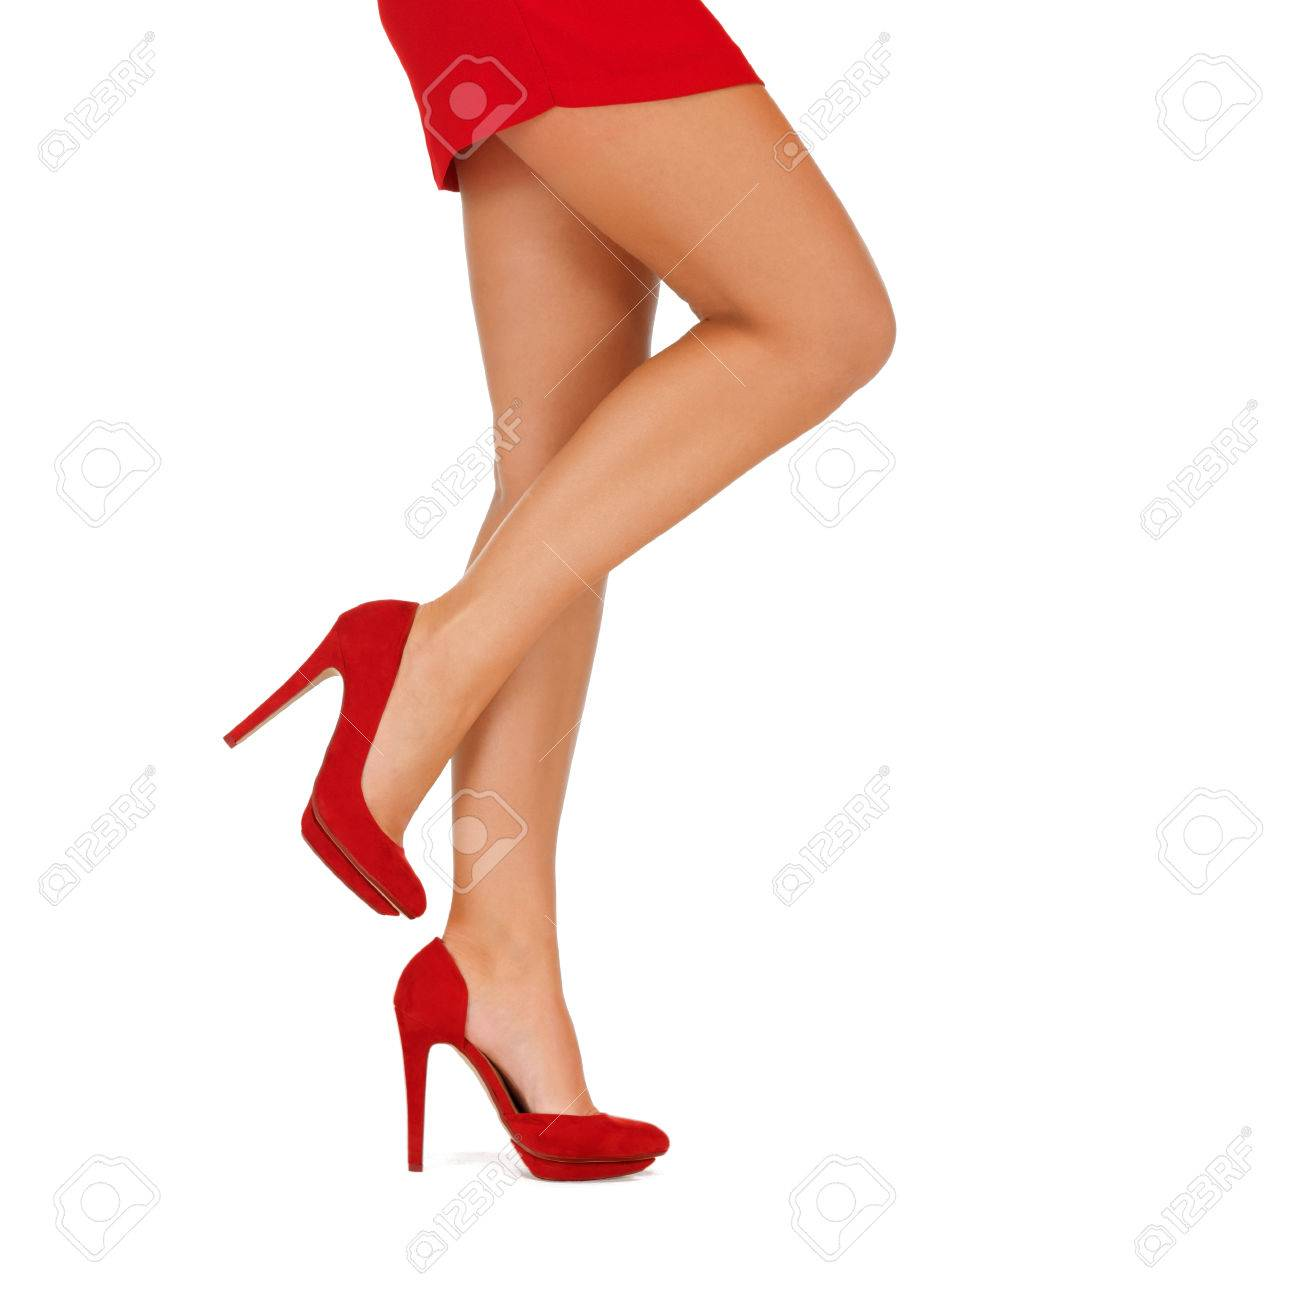 people, fashion and footwear concept - close up of woman legs in red high heeled shoes - 63607290